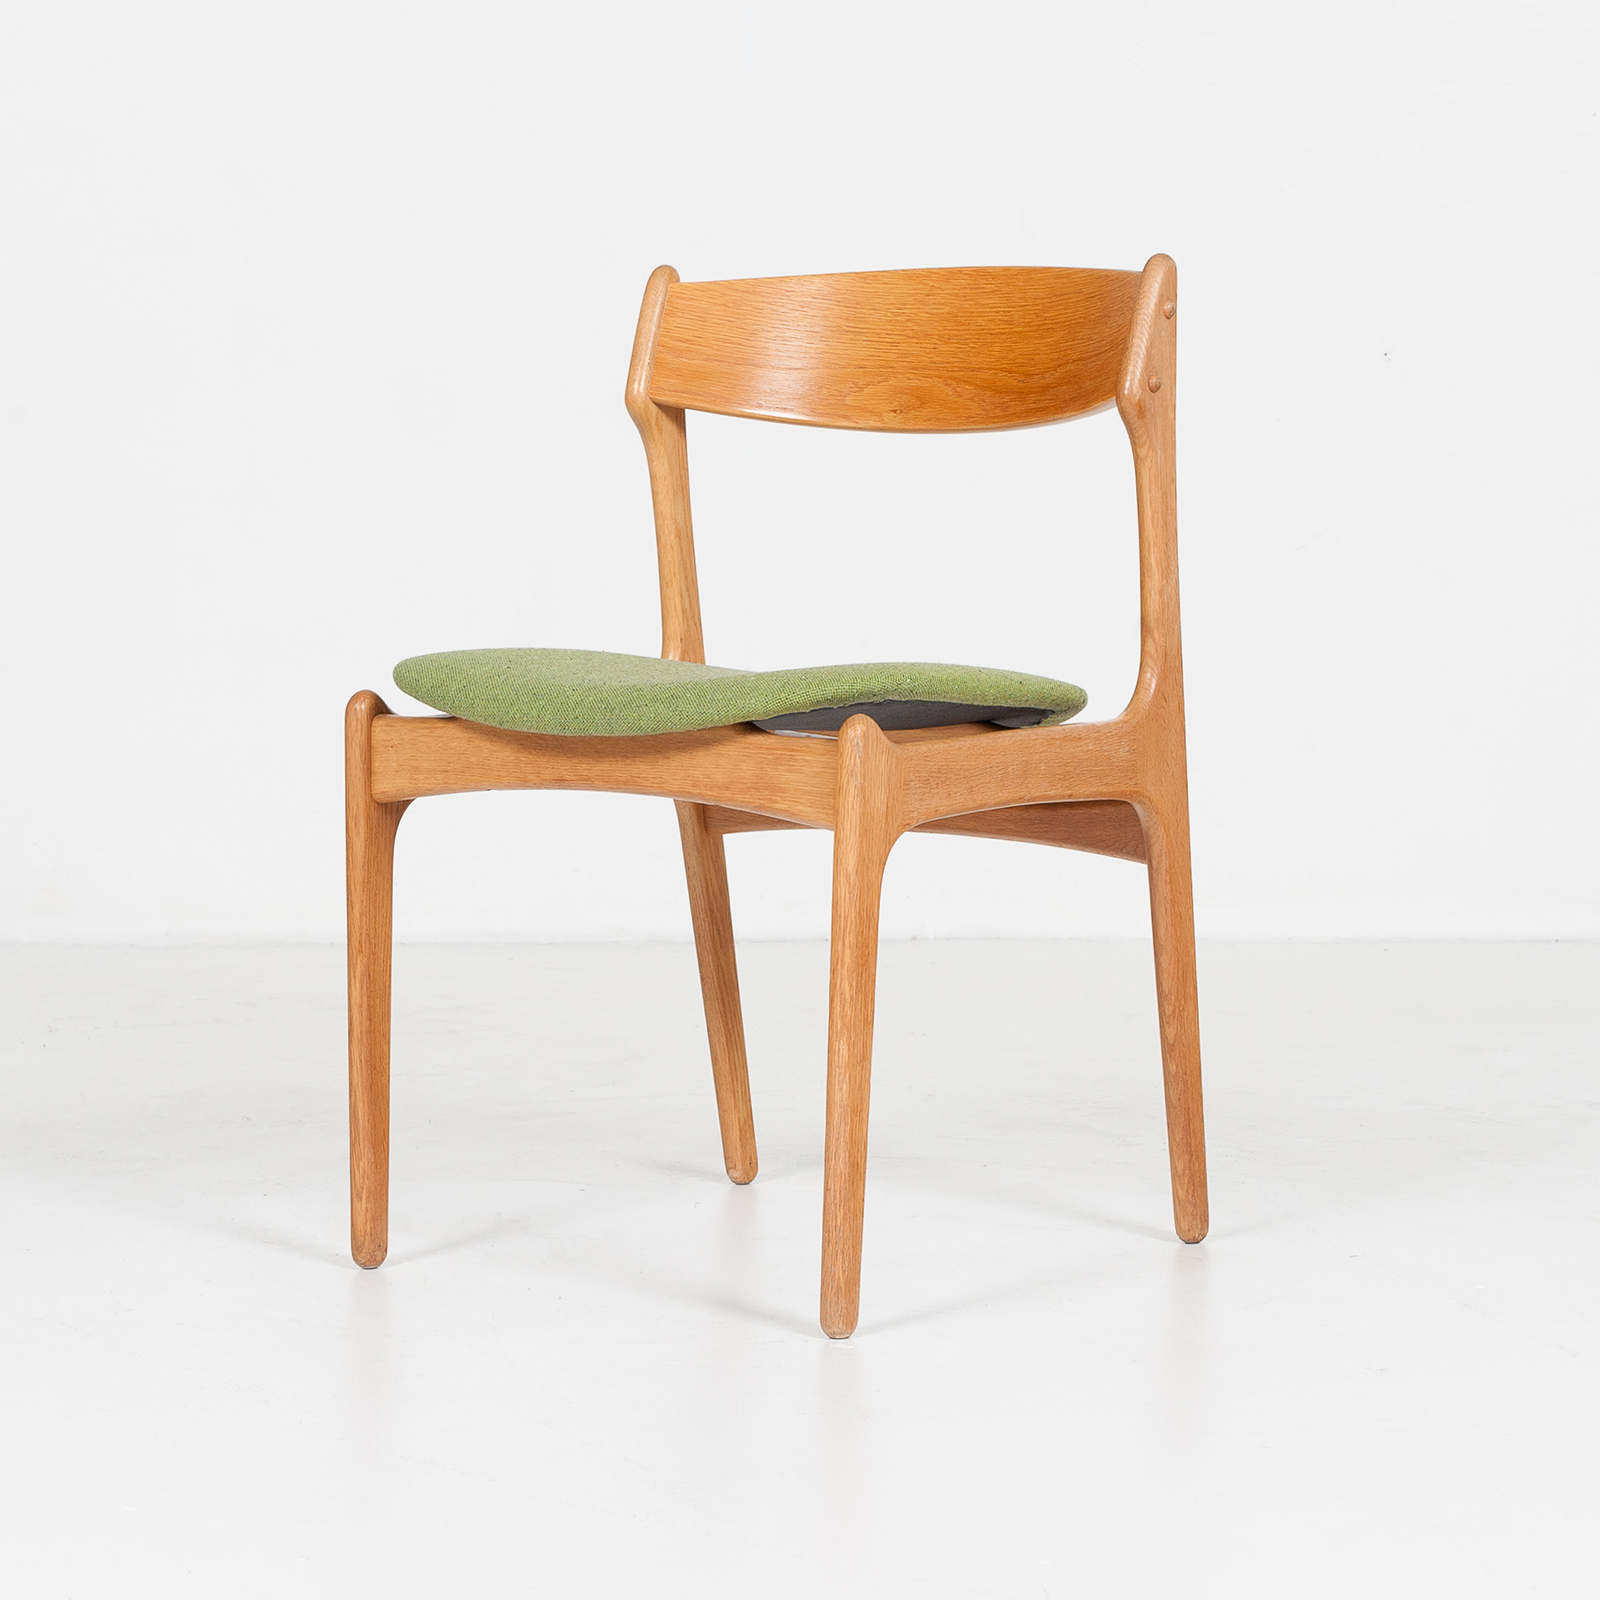 Set Of Four Dining Chairs By Erik Buch For O.d. Mobler In Oak And Green Upholstery, 1960s, Denmark79